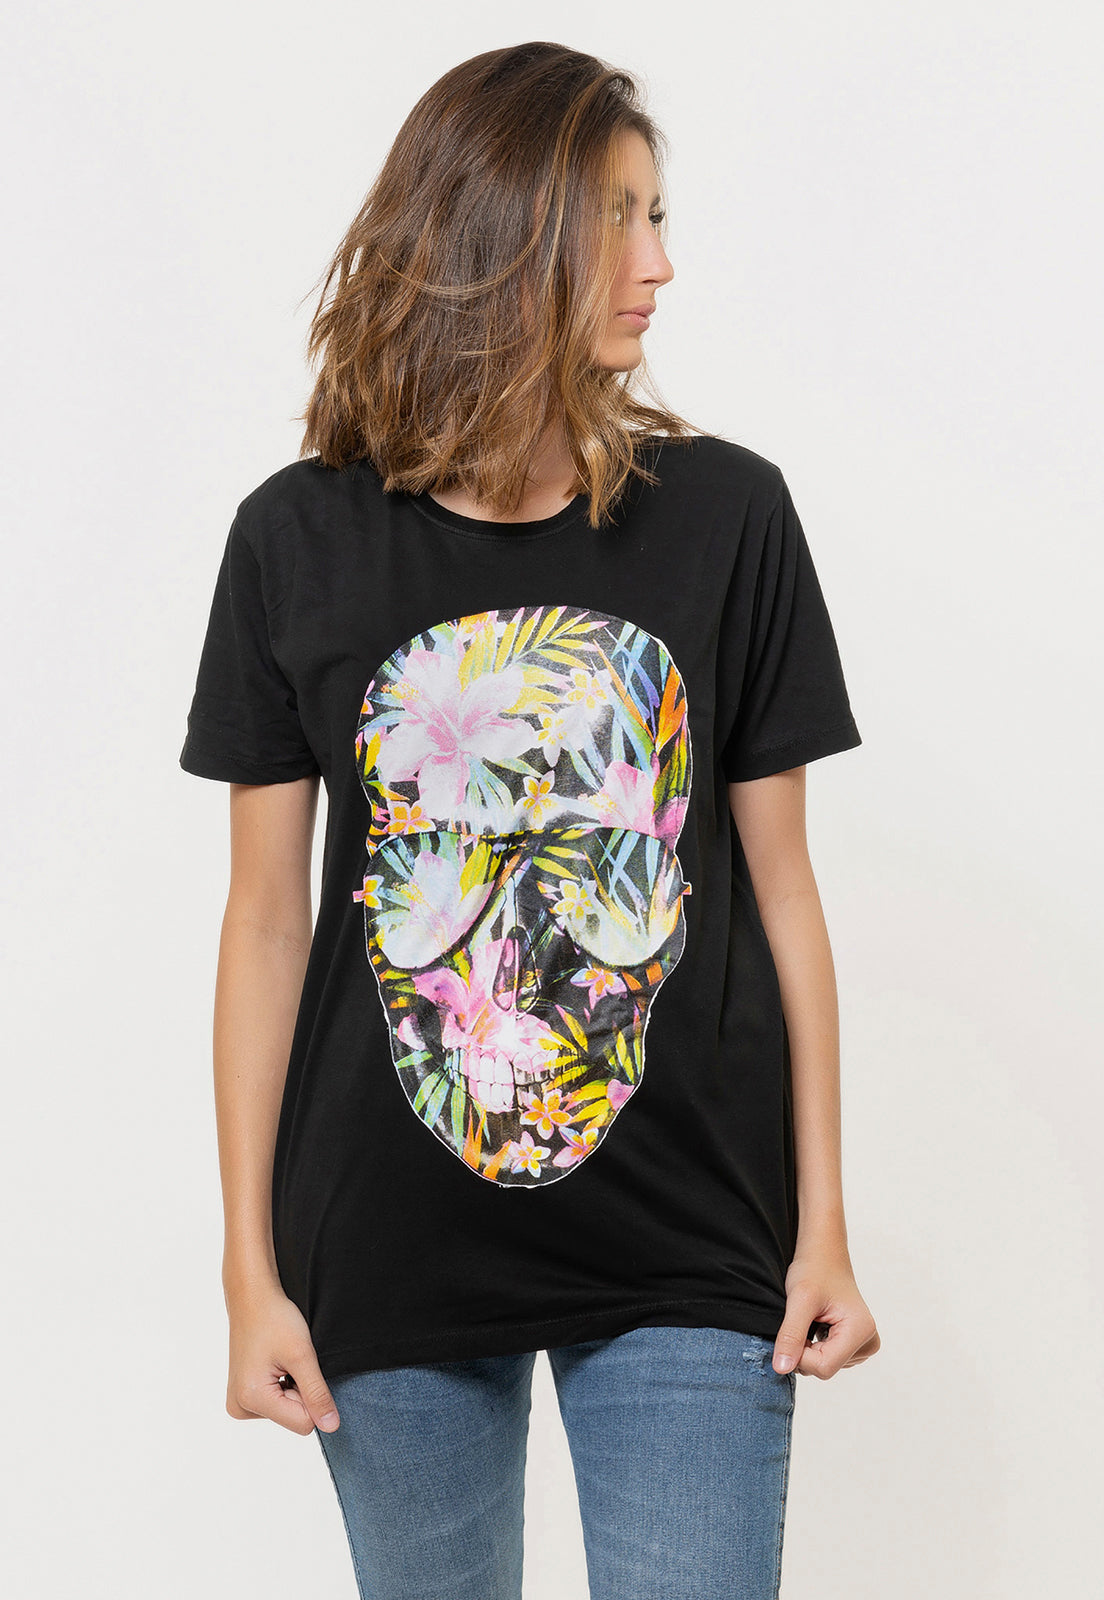 CAMISETA FEMININA ESTAMPADA LGBT JOSS - ROCK LOVE